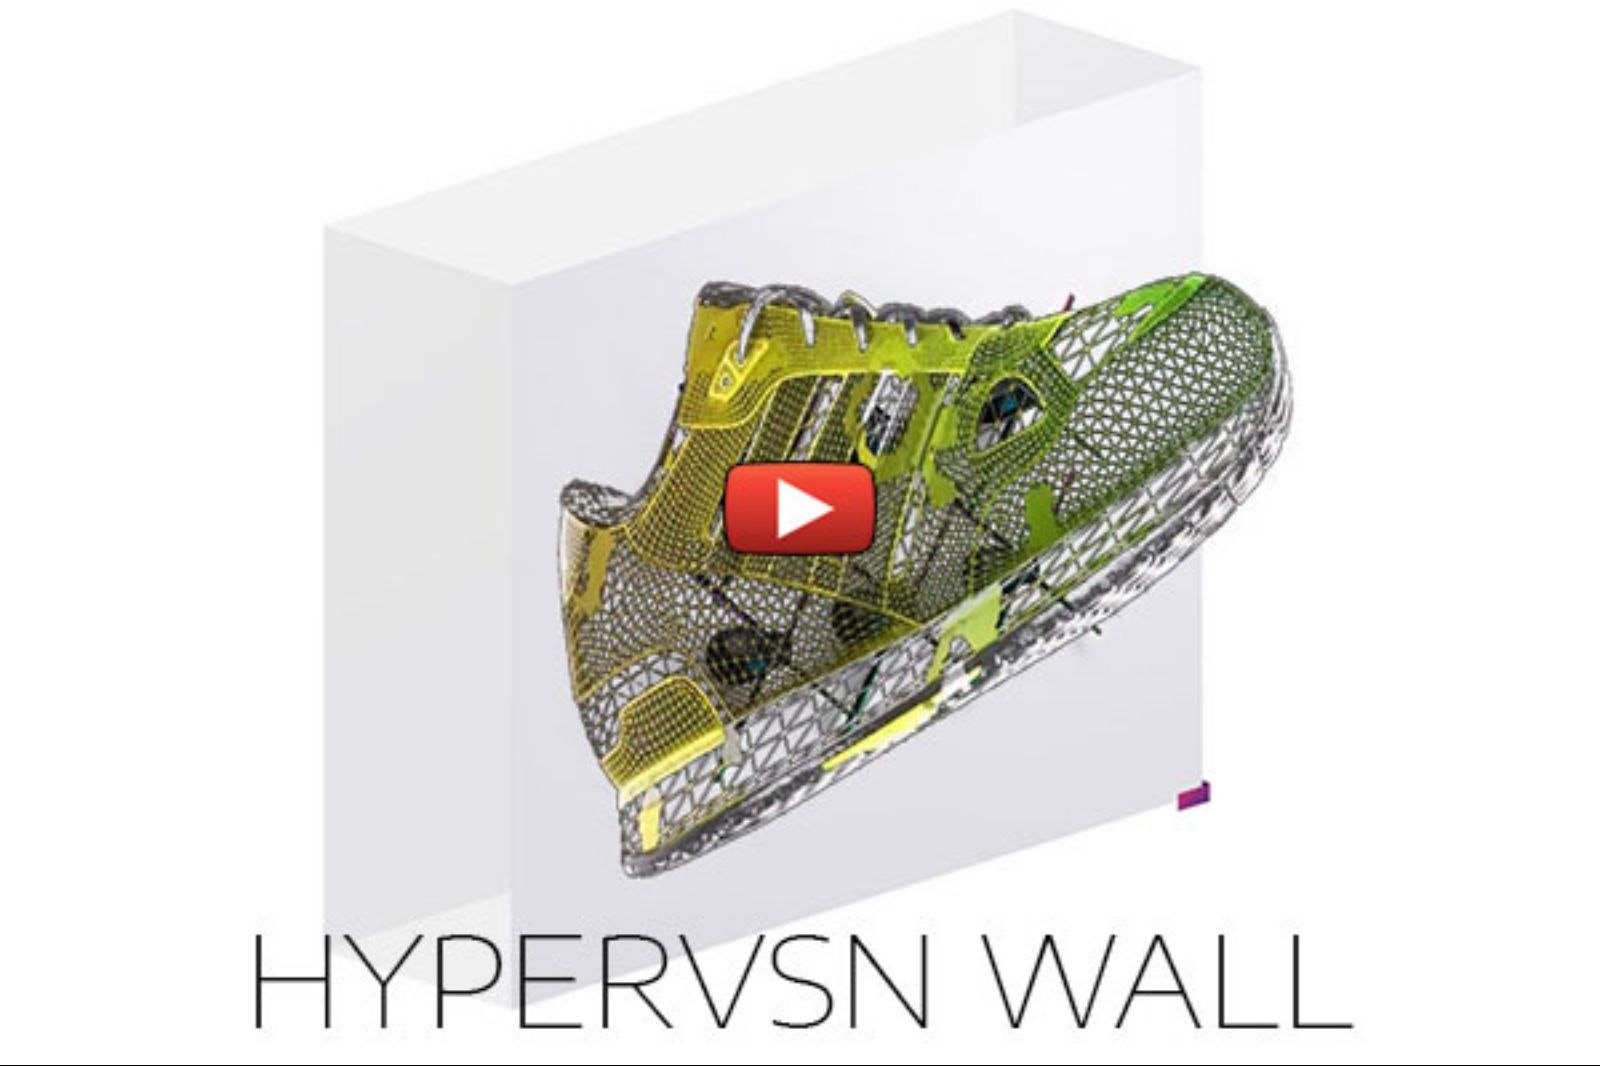 HyperVSN WALL - an image as big as your brand